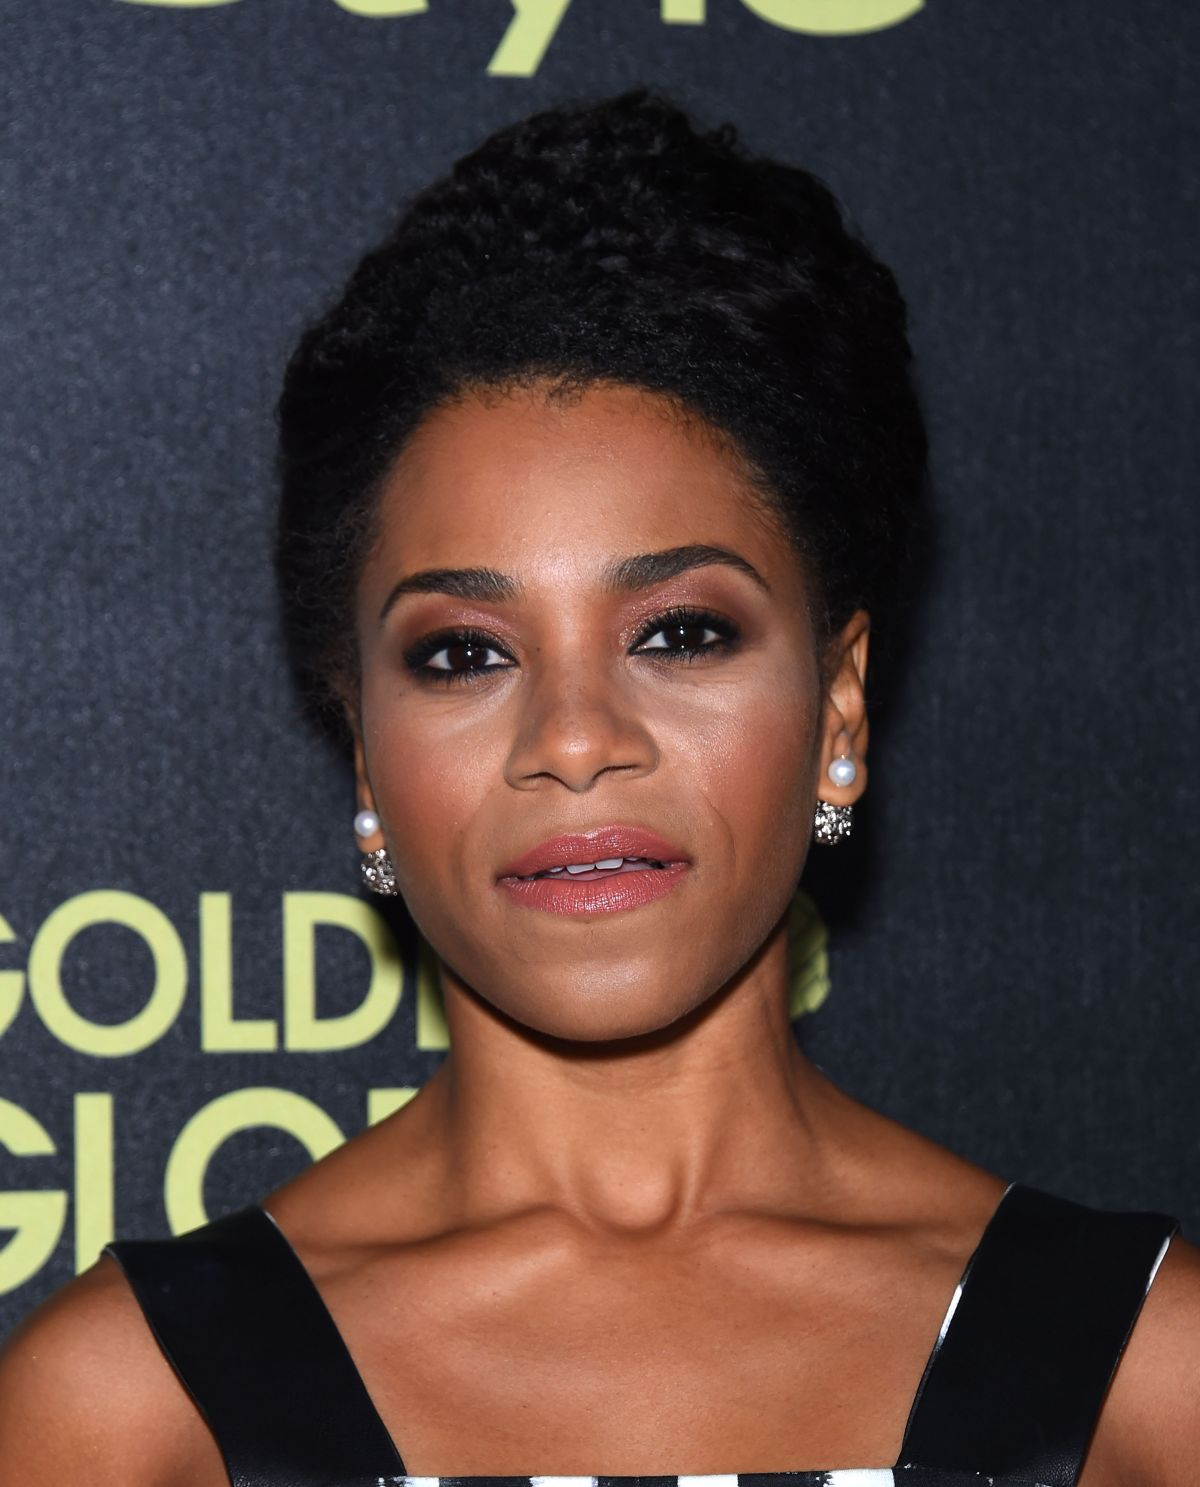 kelly mccreary twitter